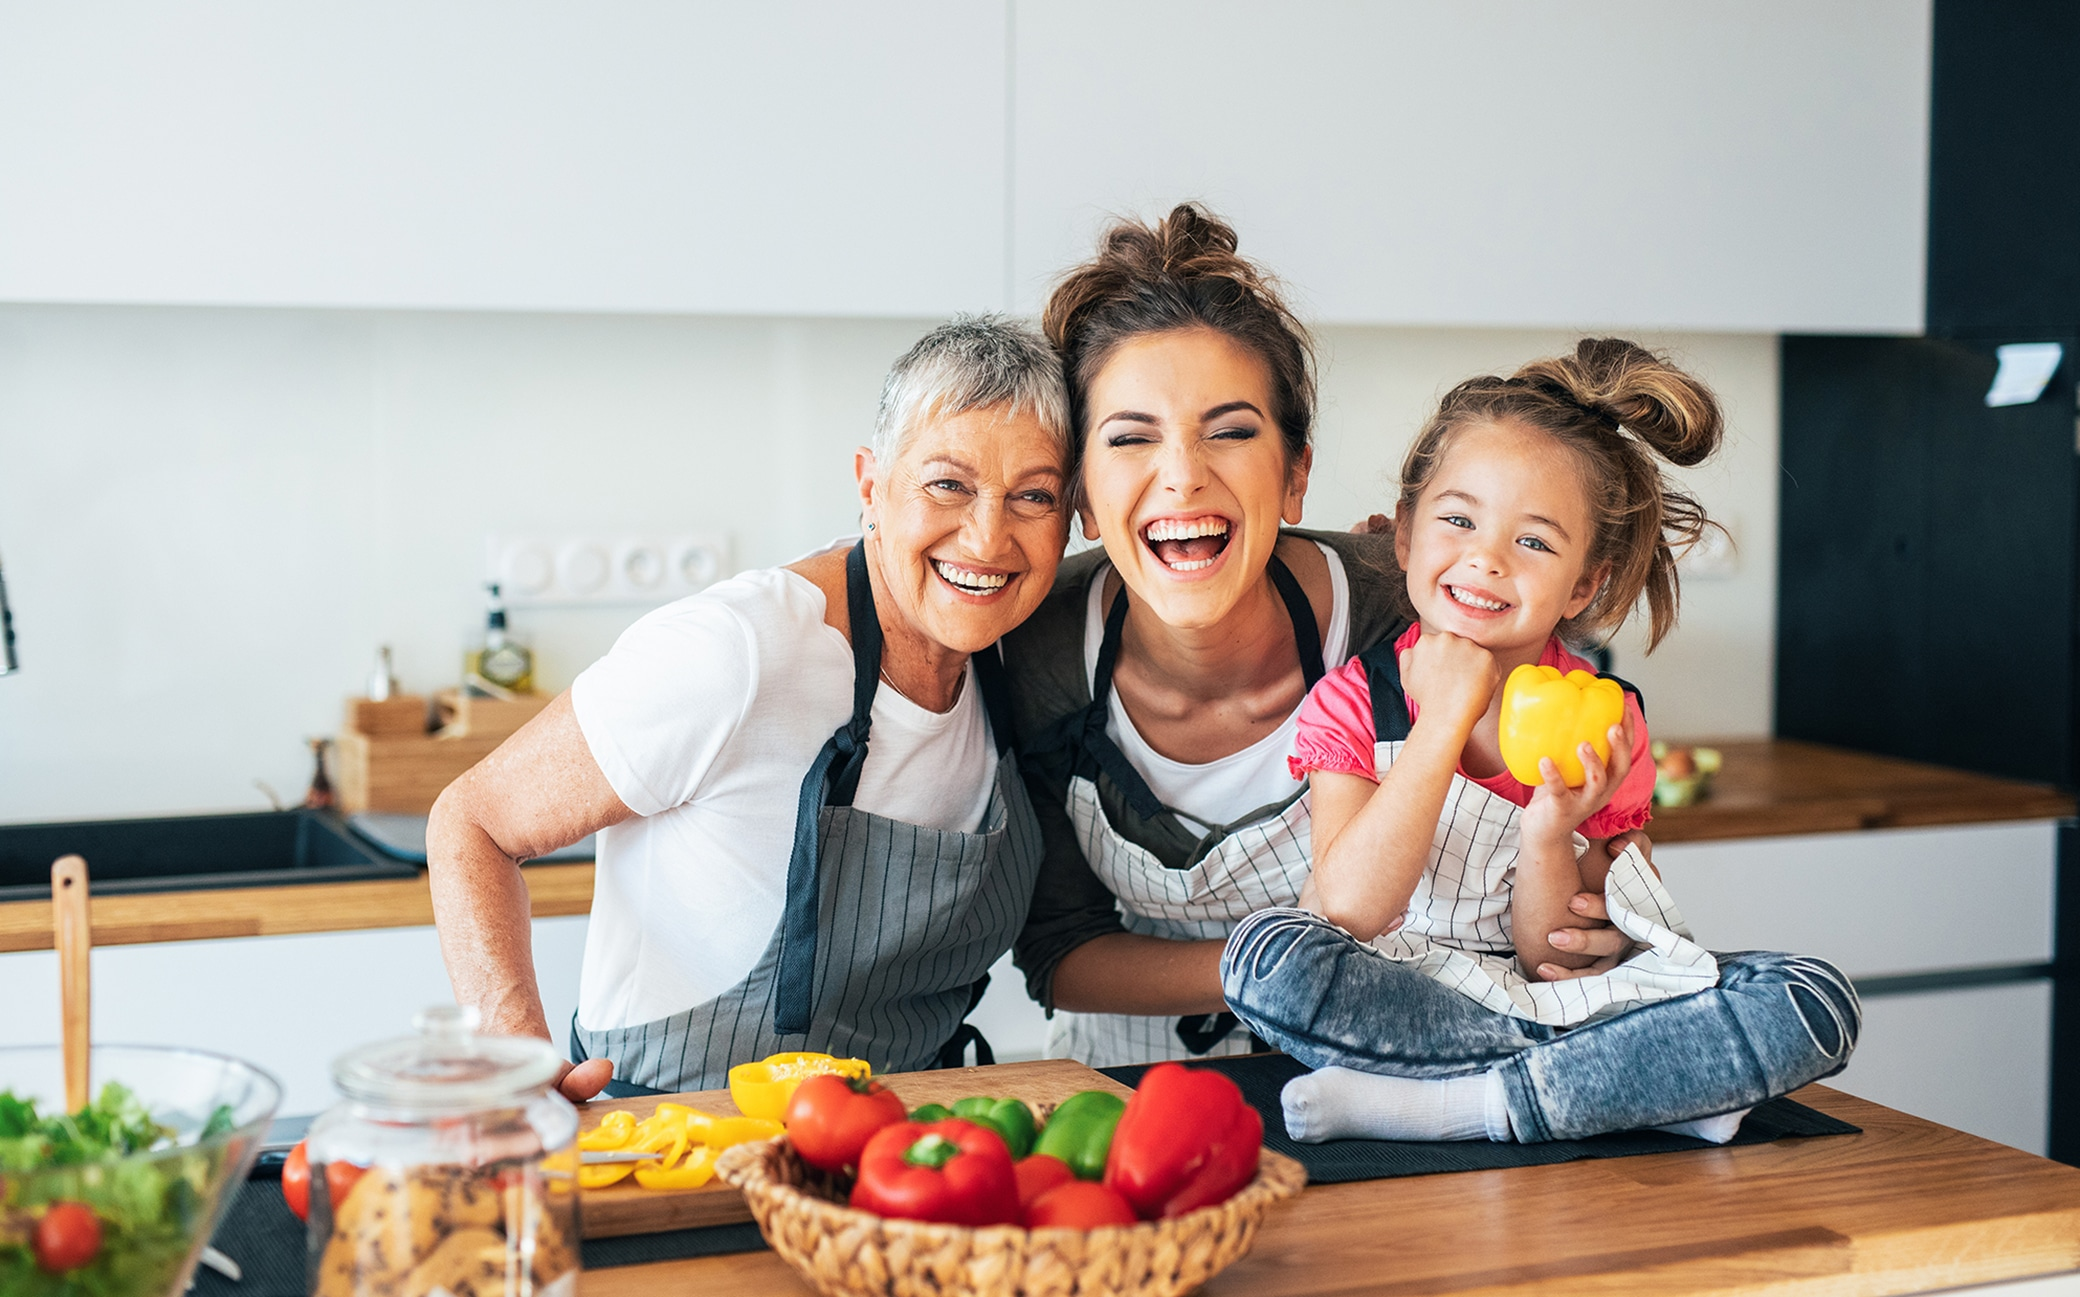 Grandmother, mother and little girl in the kitchen